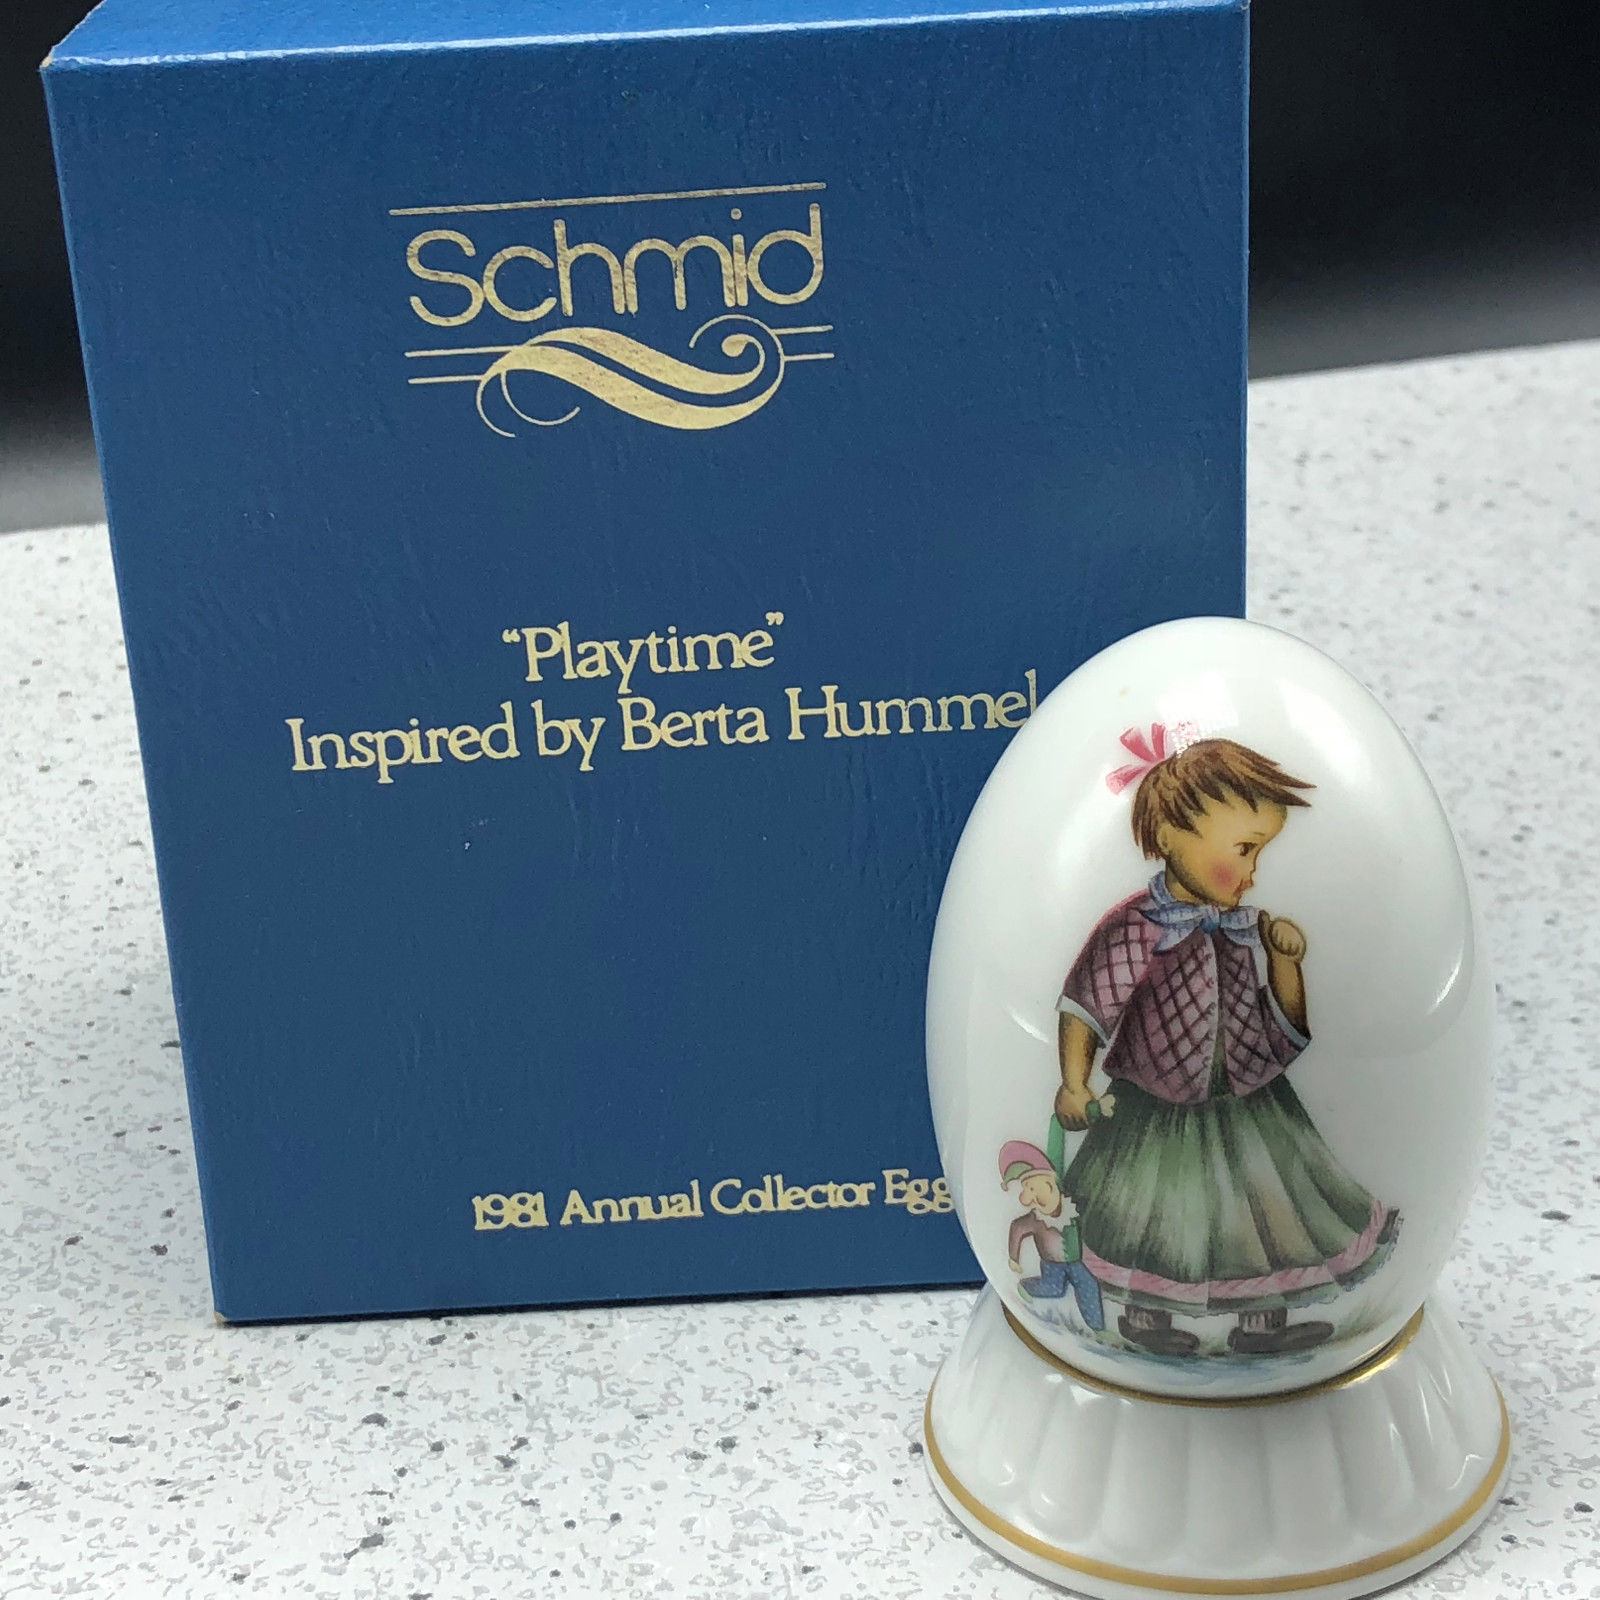 1981 SCHMID BERTA HUMMEL GOEBEL ANNUAL EASTER EGG figurine 177300 Playtime doll